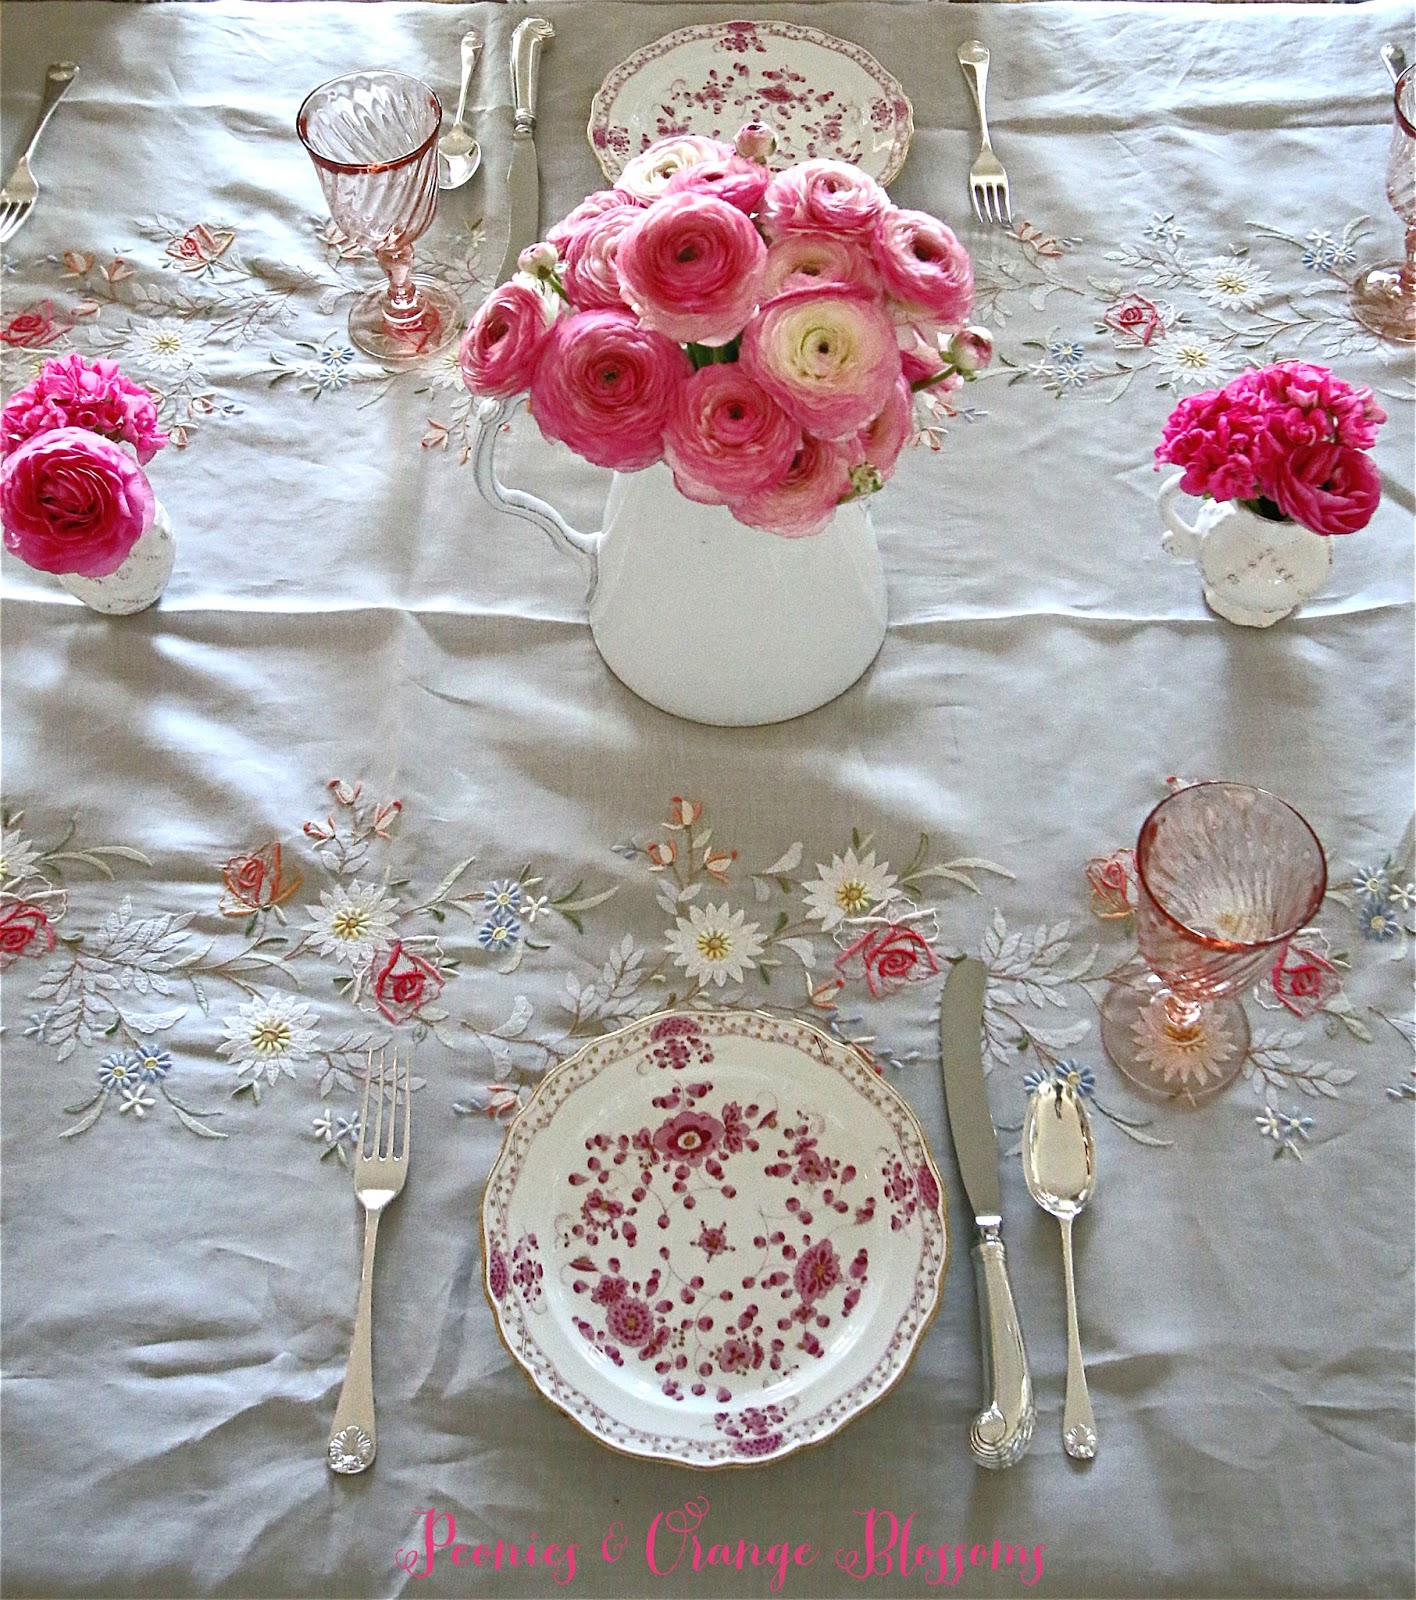 Spring French table setting with Madeira table cloth, Meissen plates, pink ranunculus, and vintage French goblets.